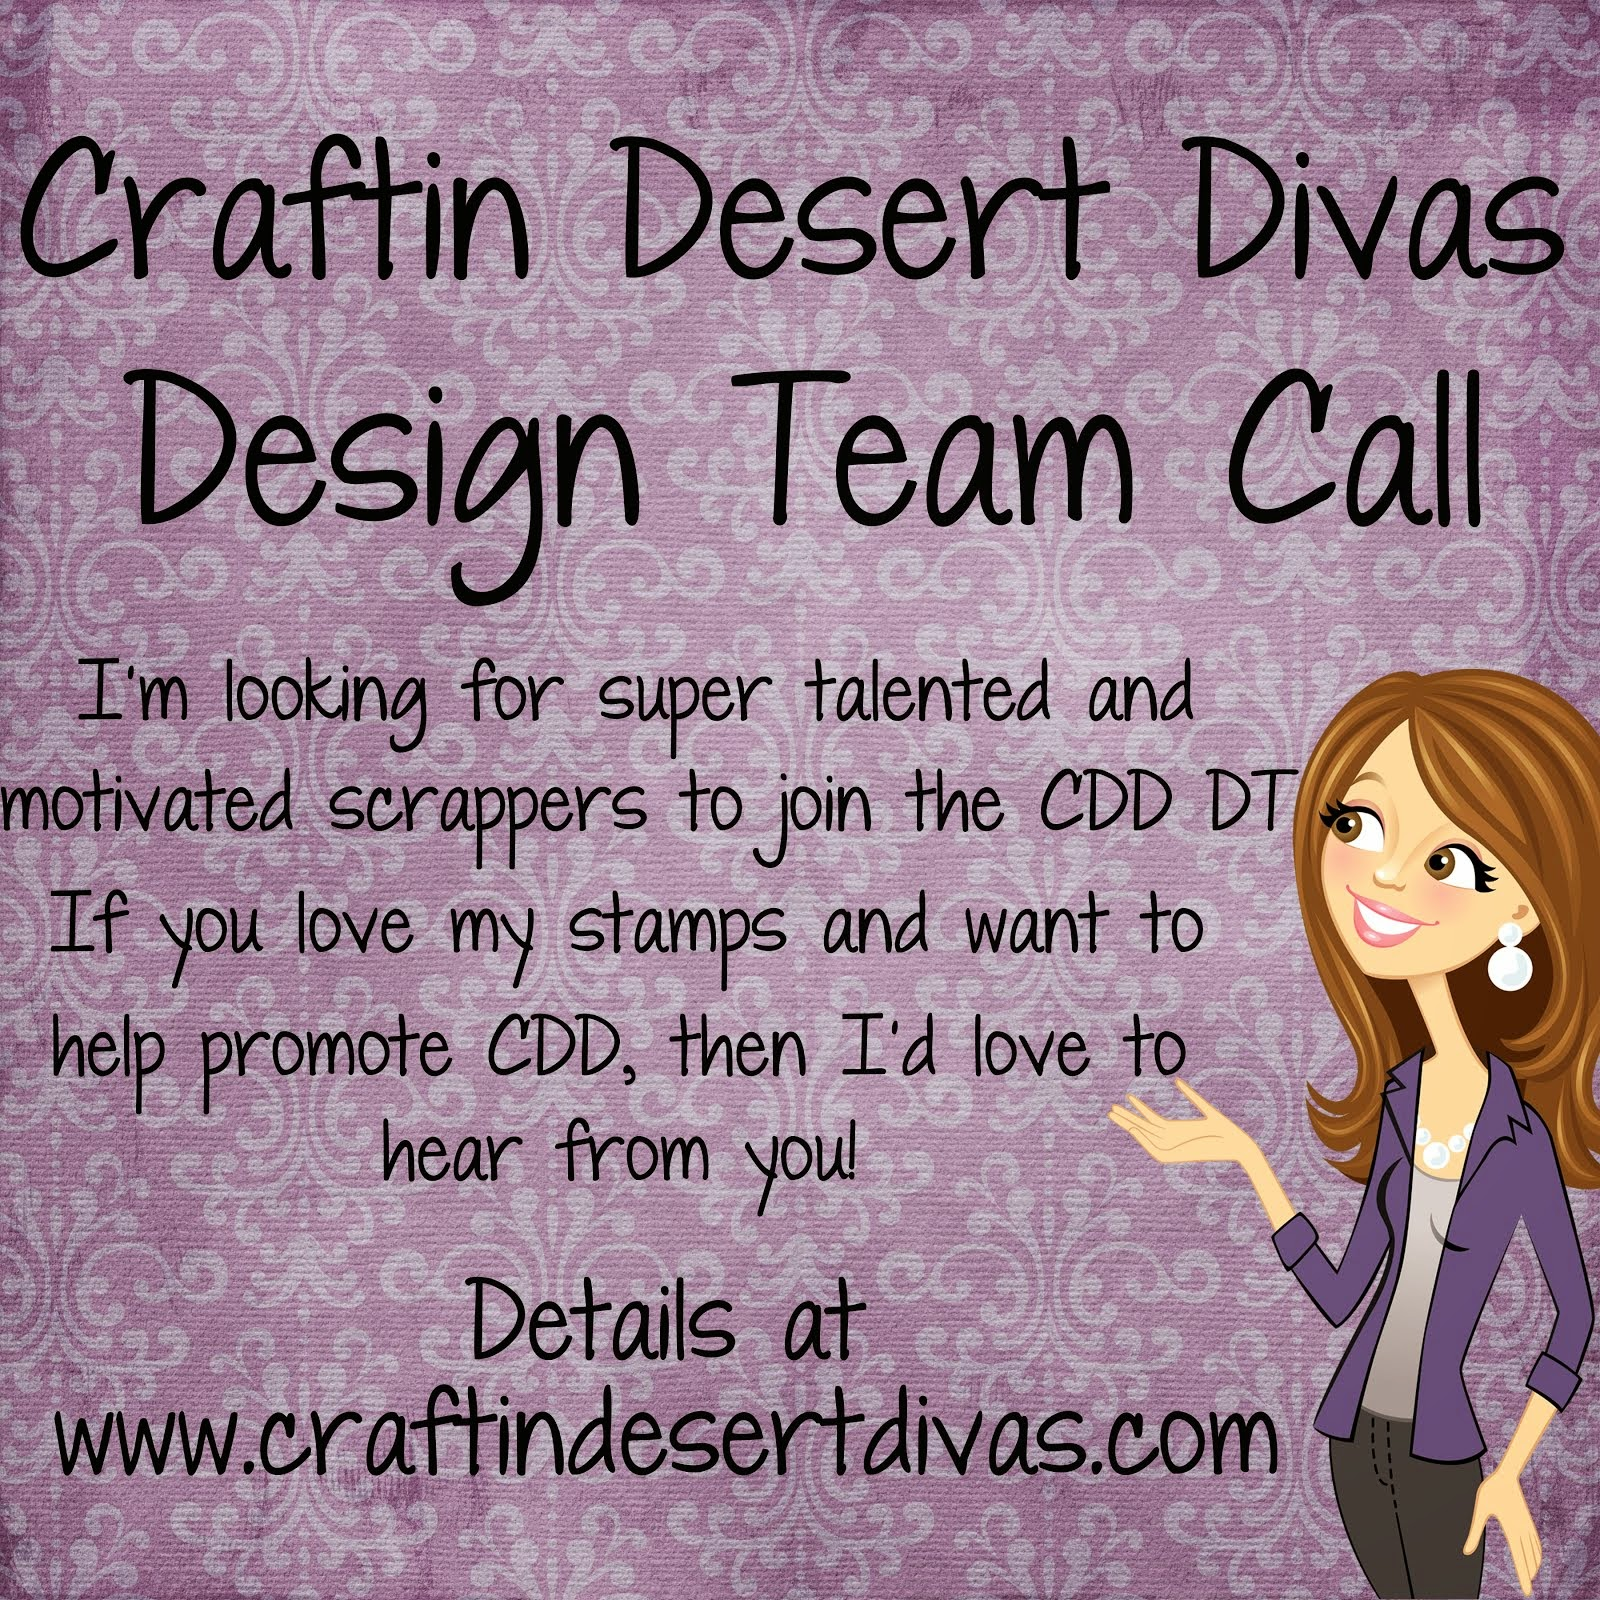 CDD Design Team Call